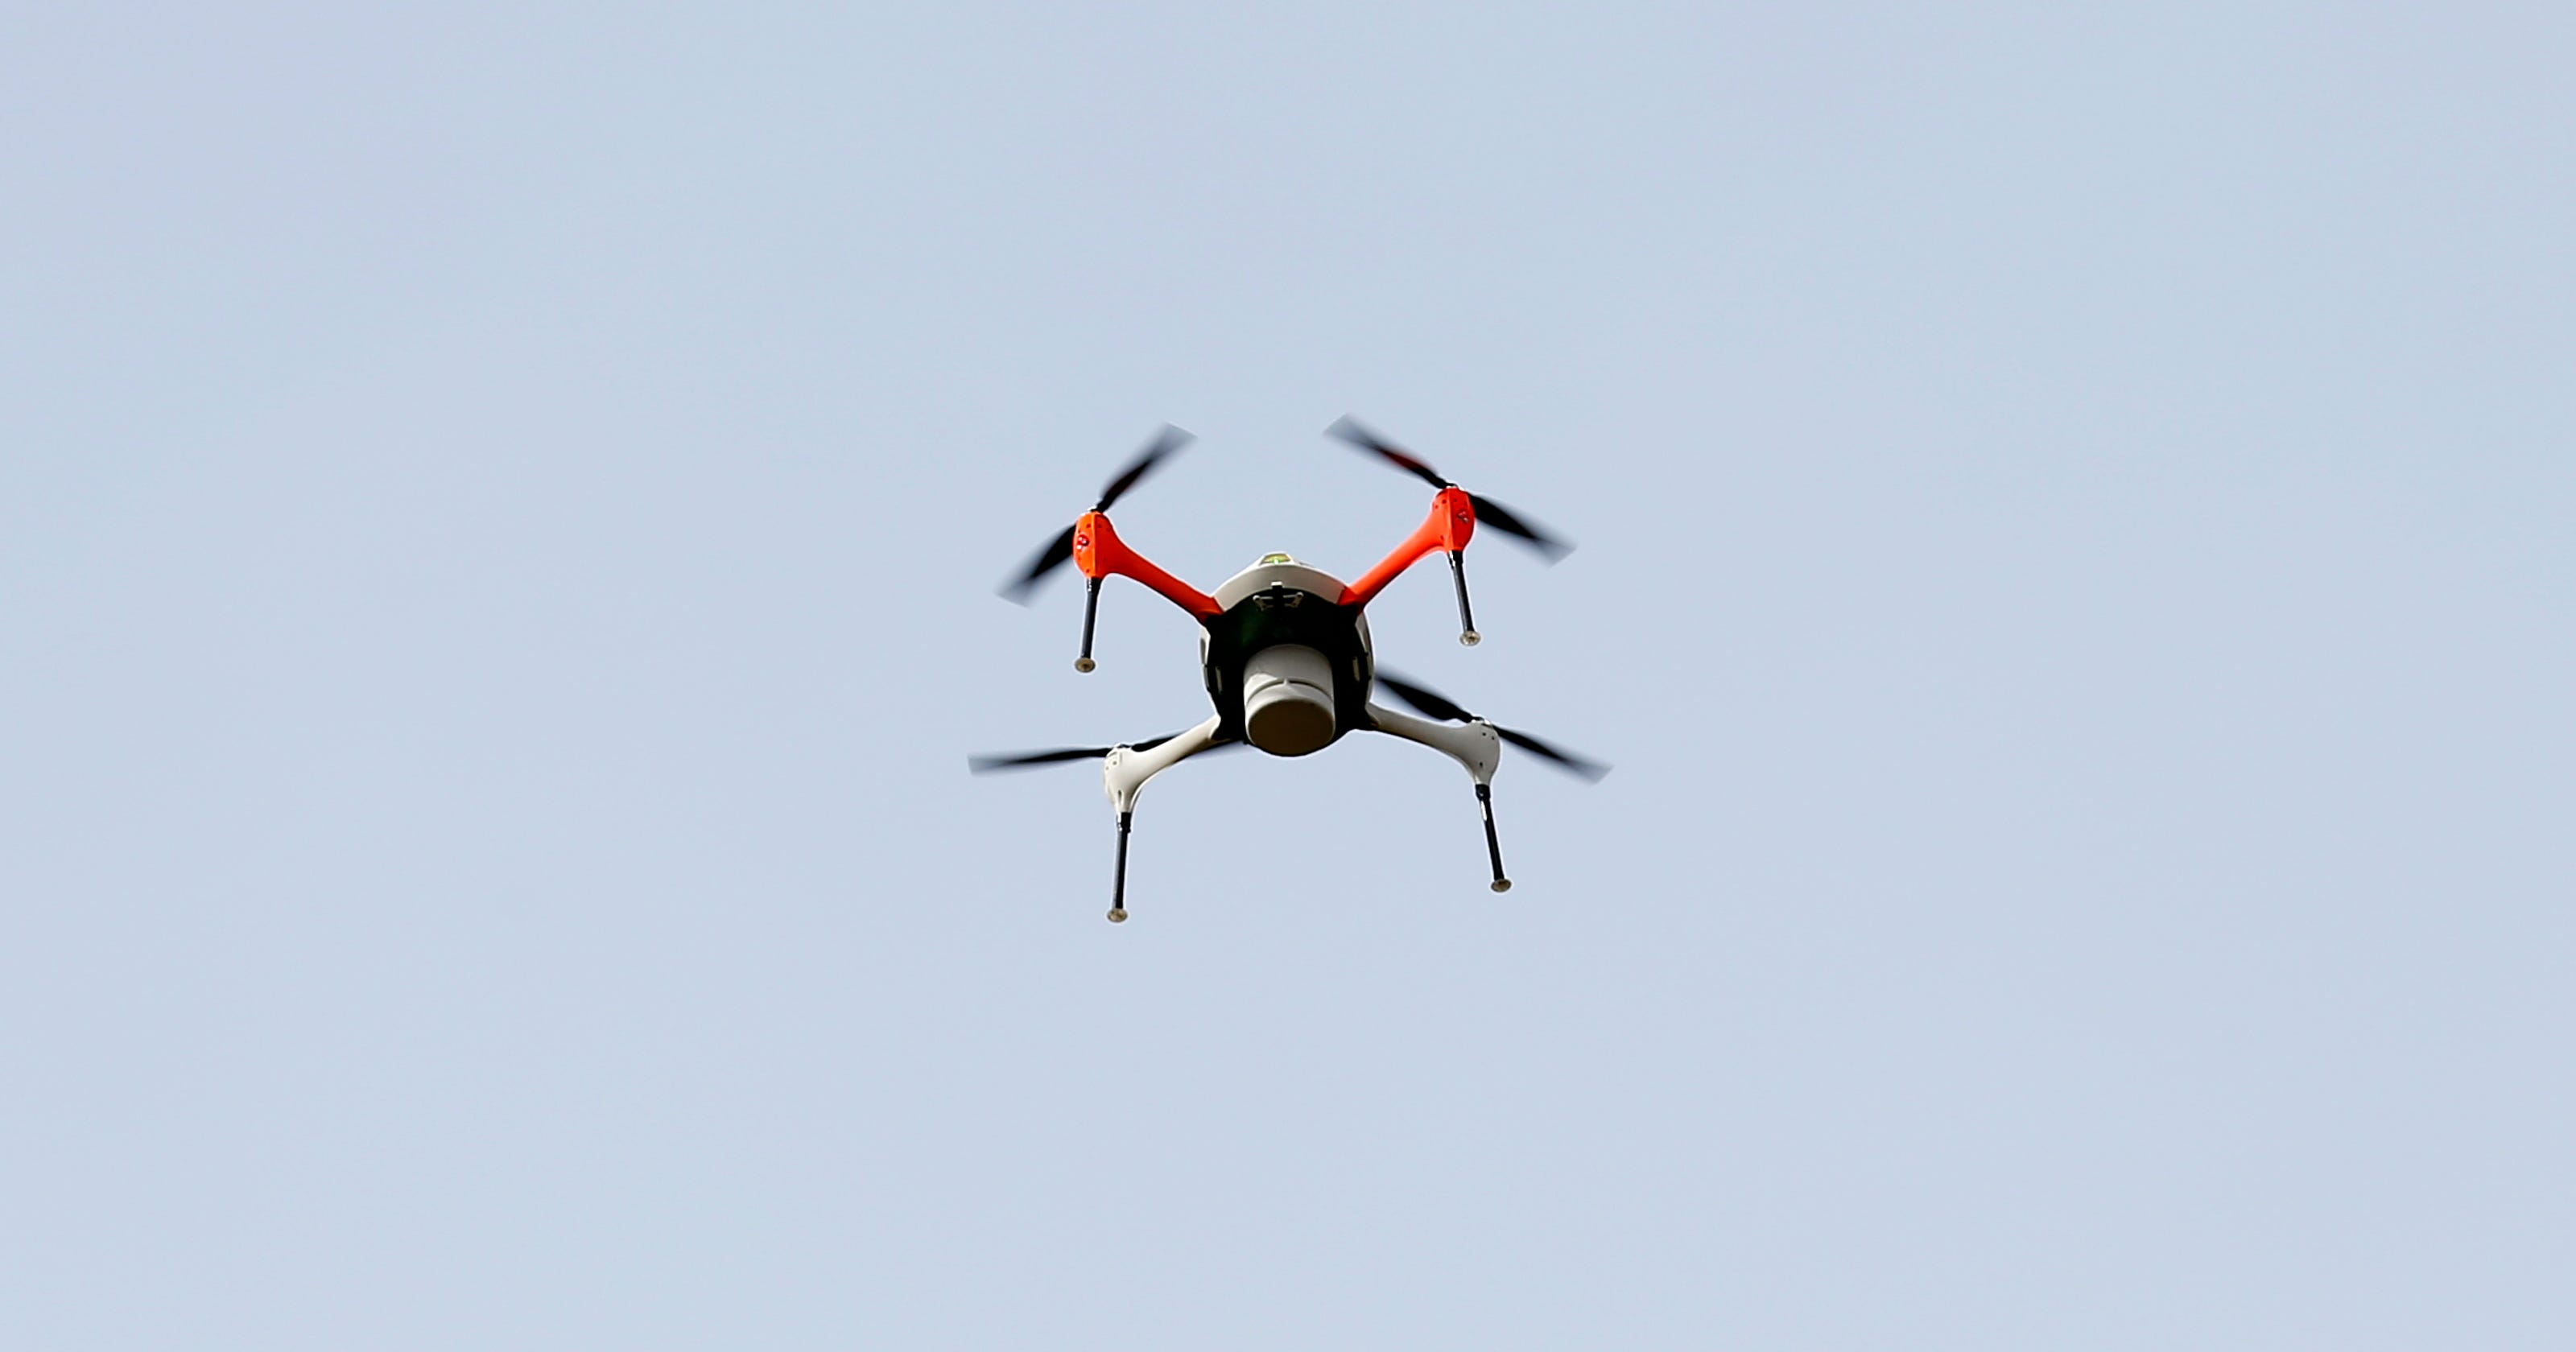 Shooting a drone that is hovering over my house or backyard